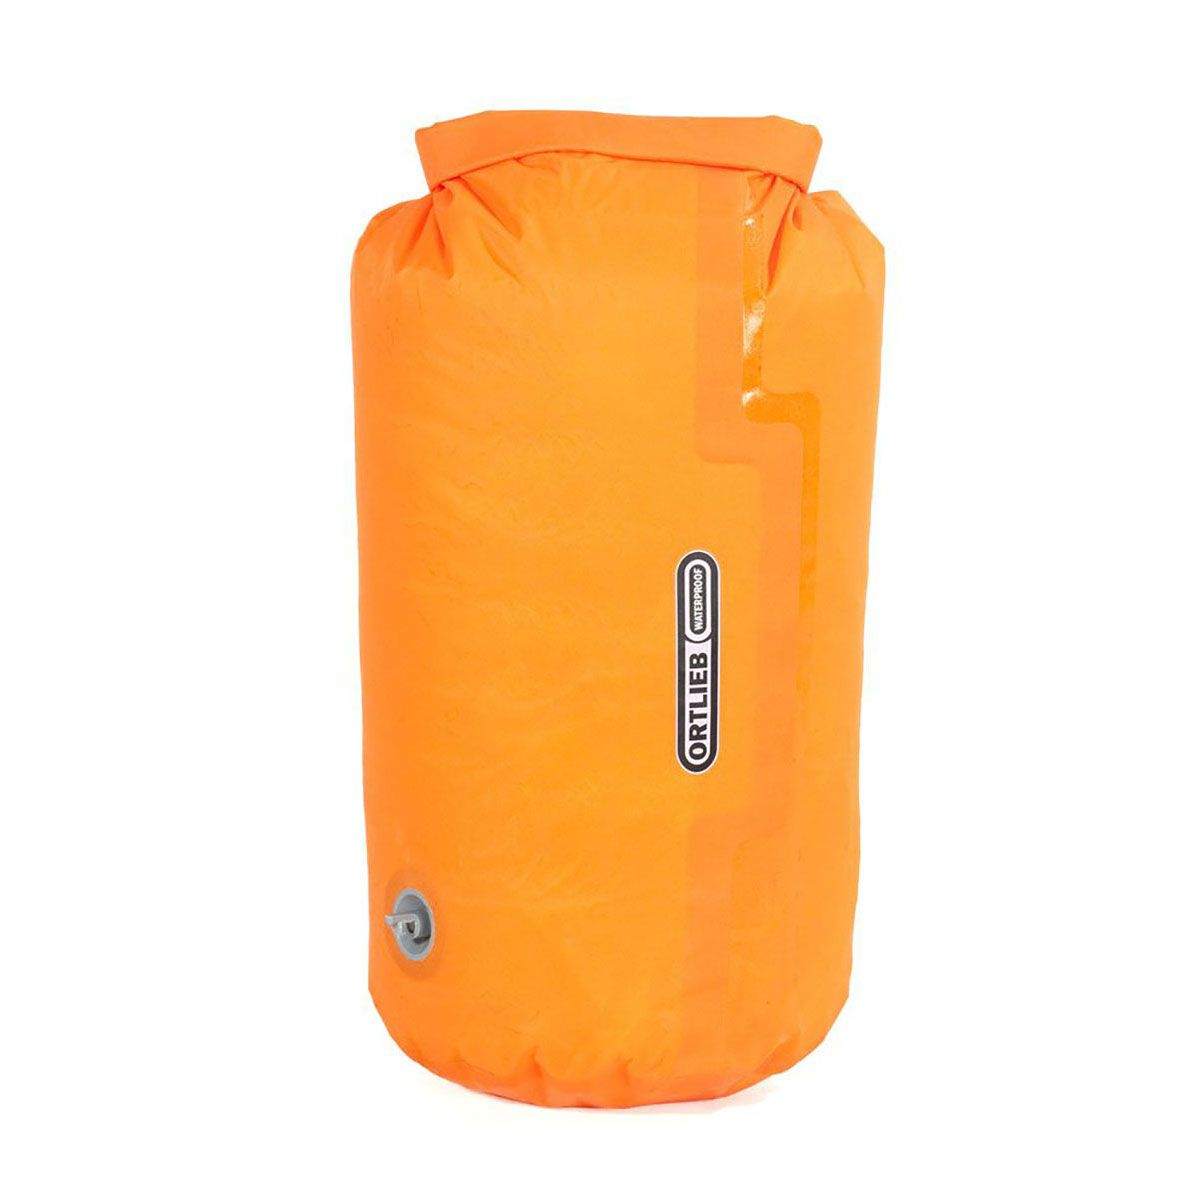 DRY BAG PS10 with valve